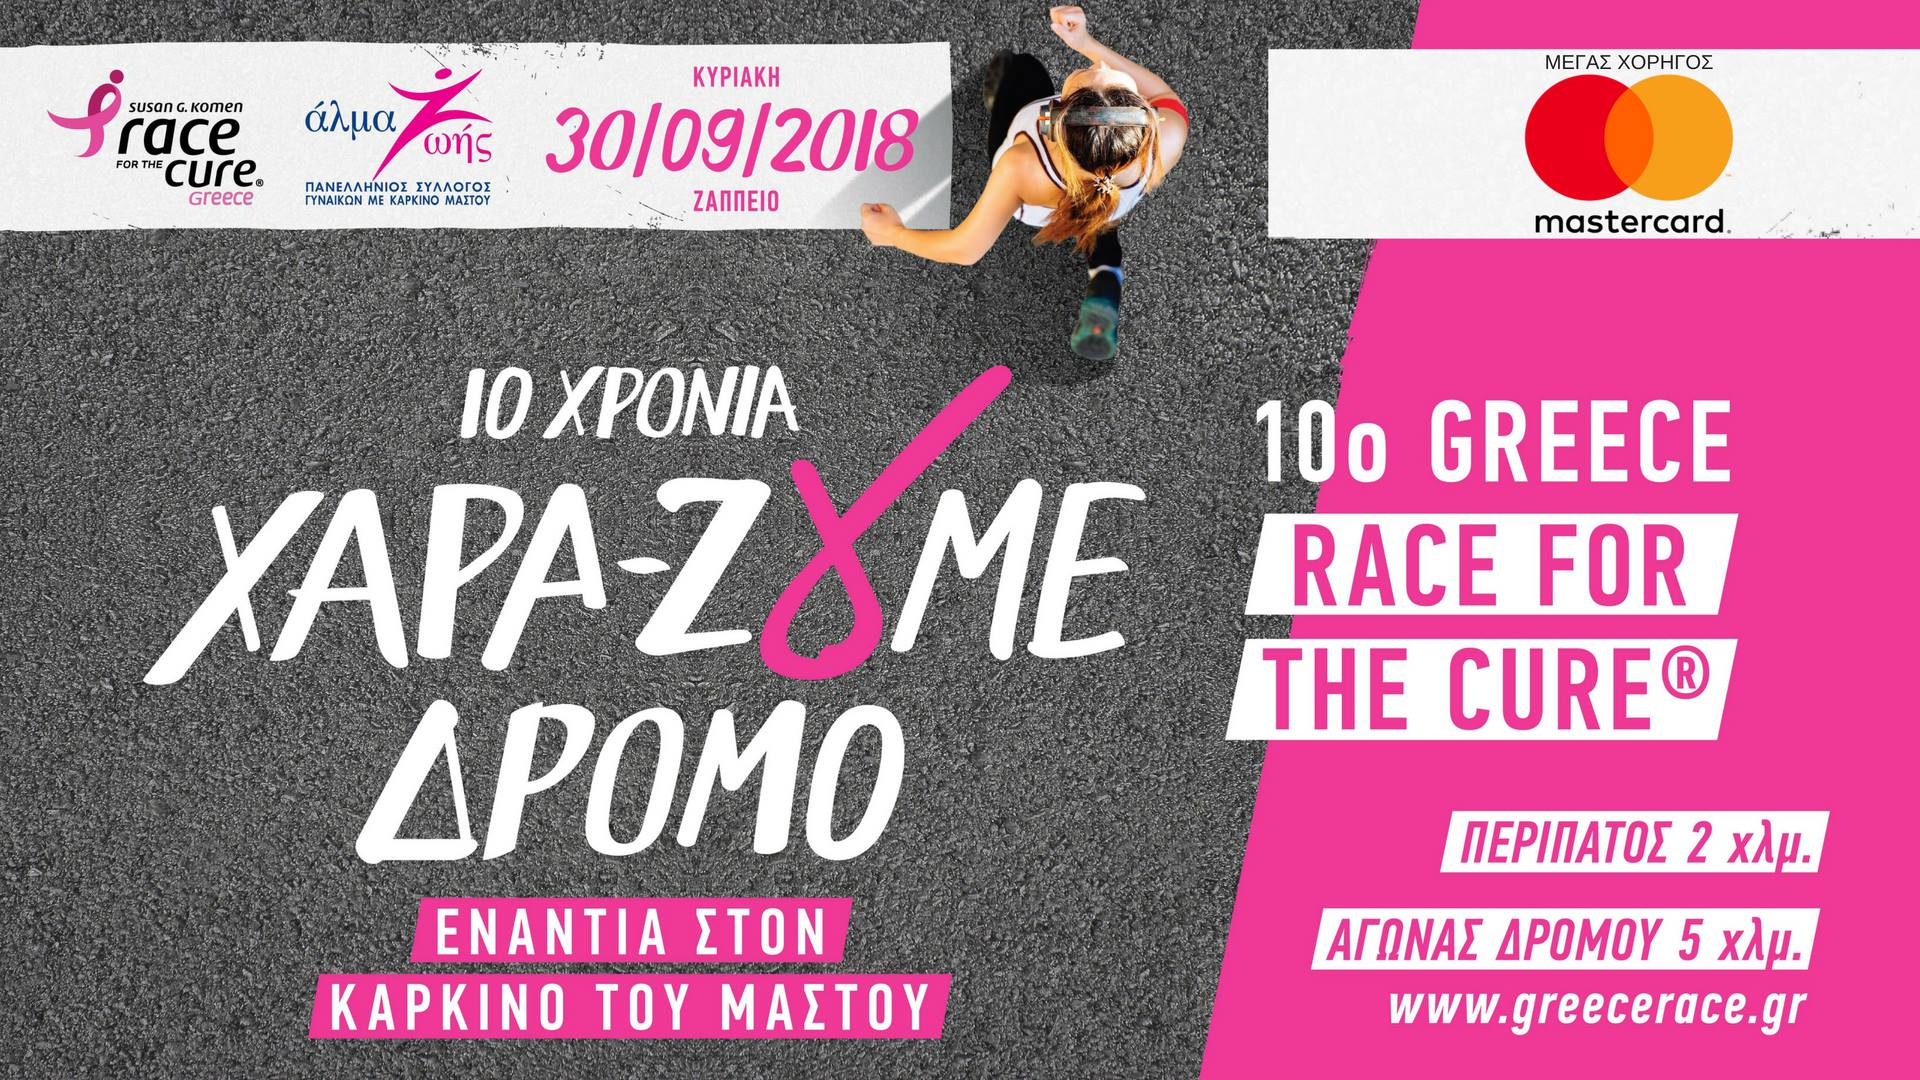 greece-race-for-the-cure-breast-cancer-awareness